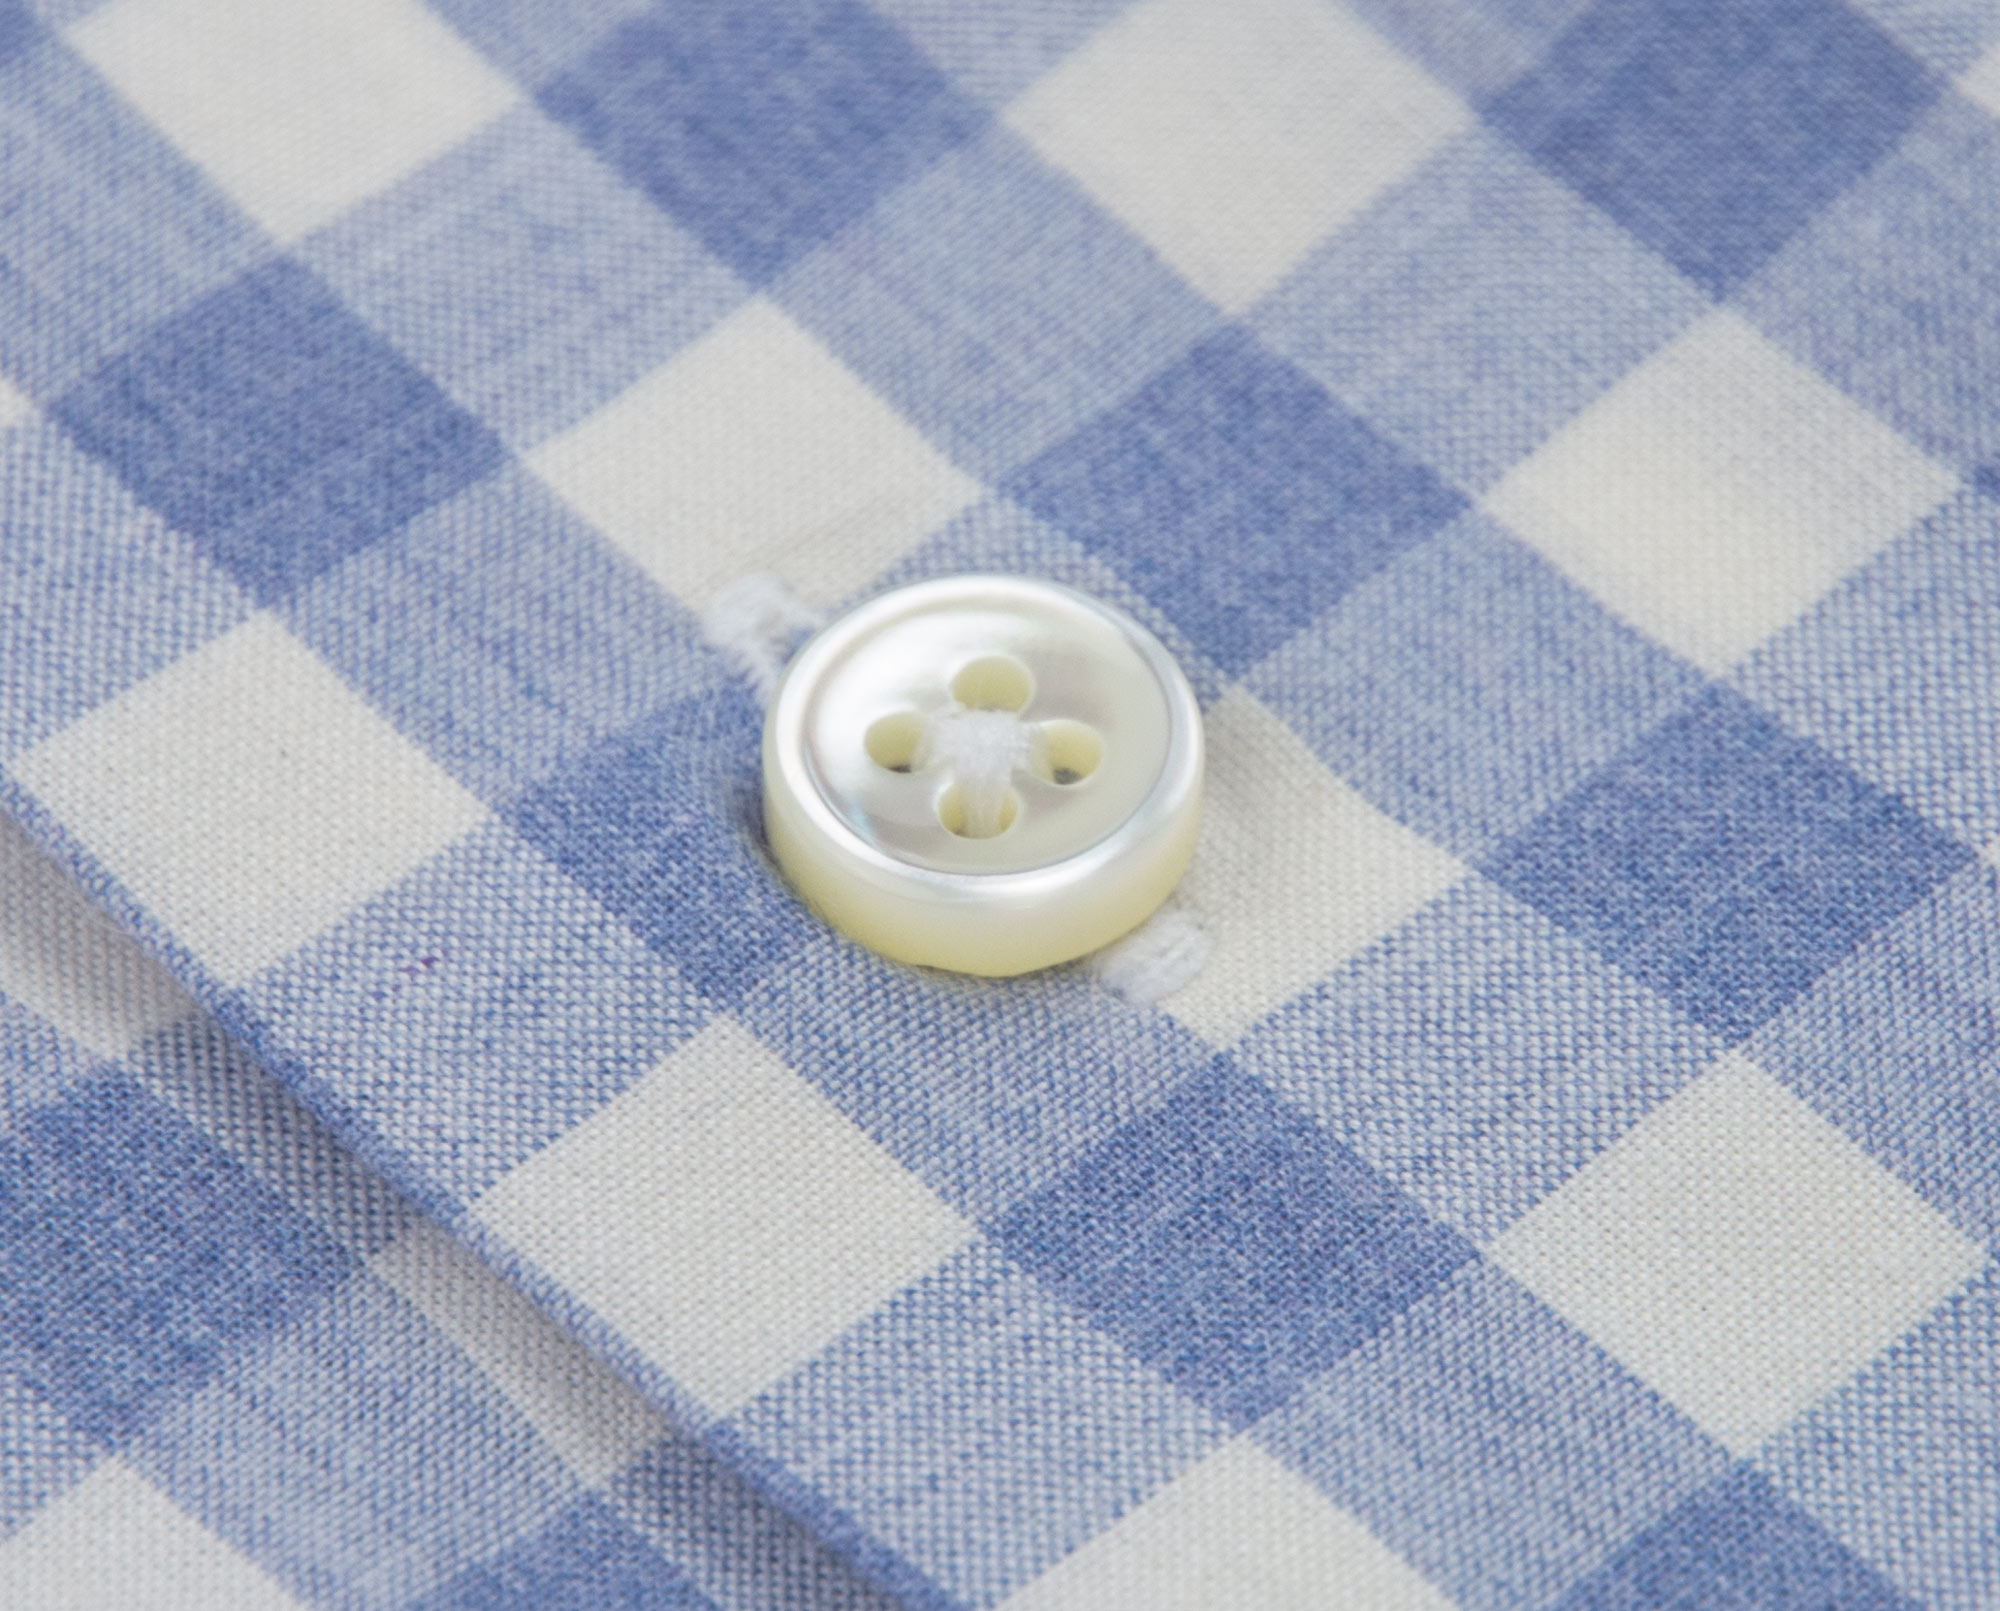 Hand crafted button holes to accommodate 3 millimeter shell buttons